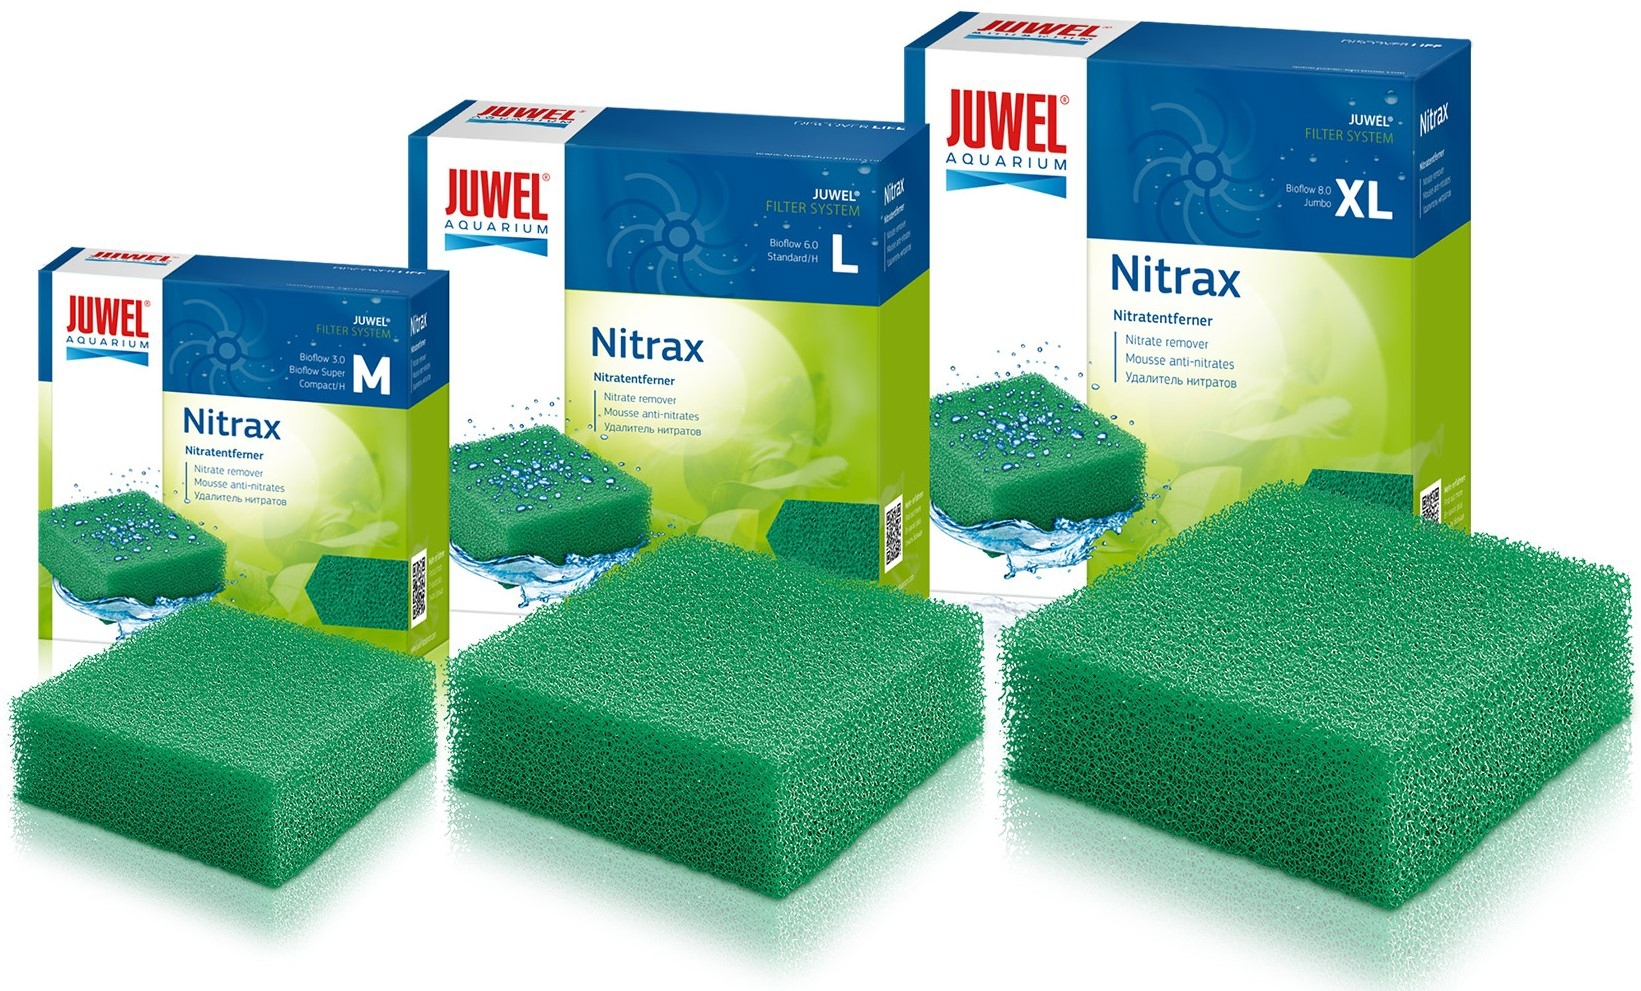 Shop Juwel Nitrax -nitrate remover